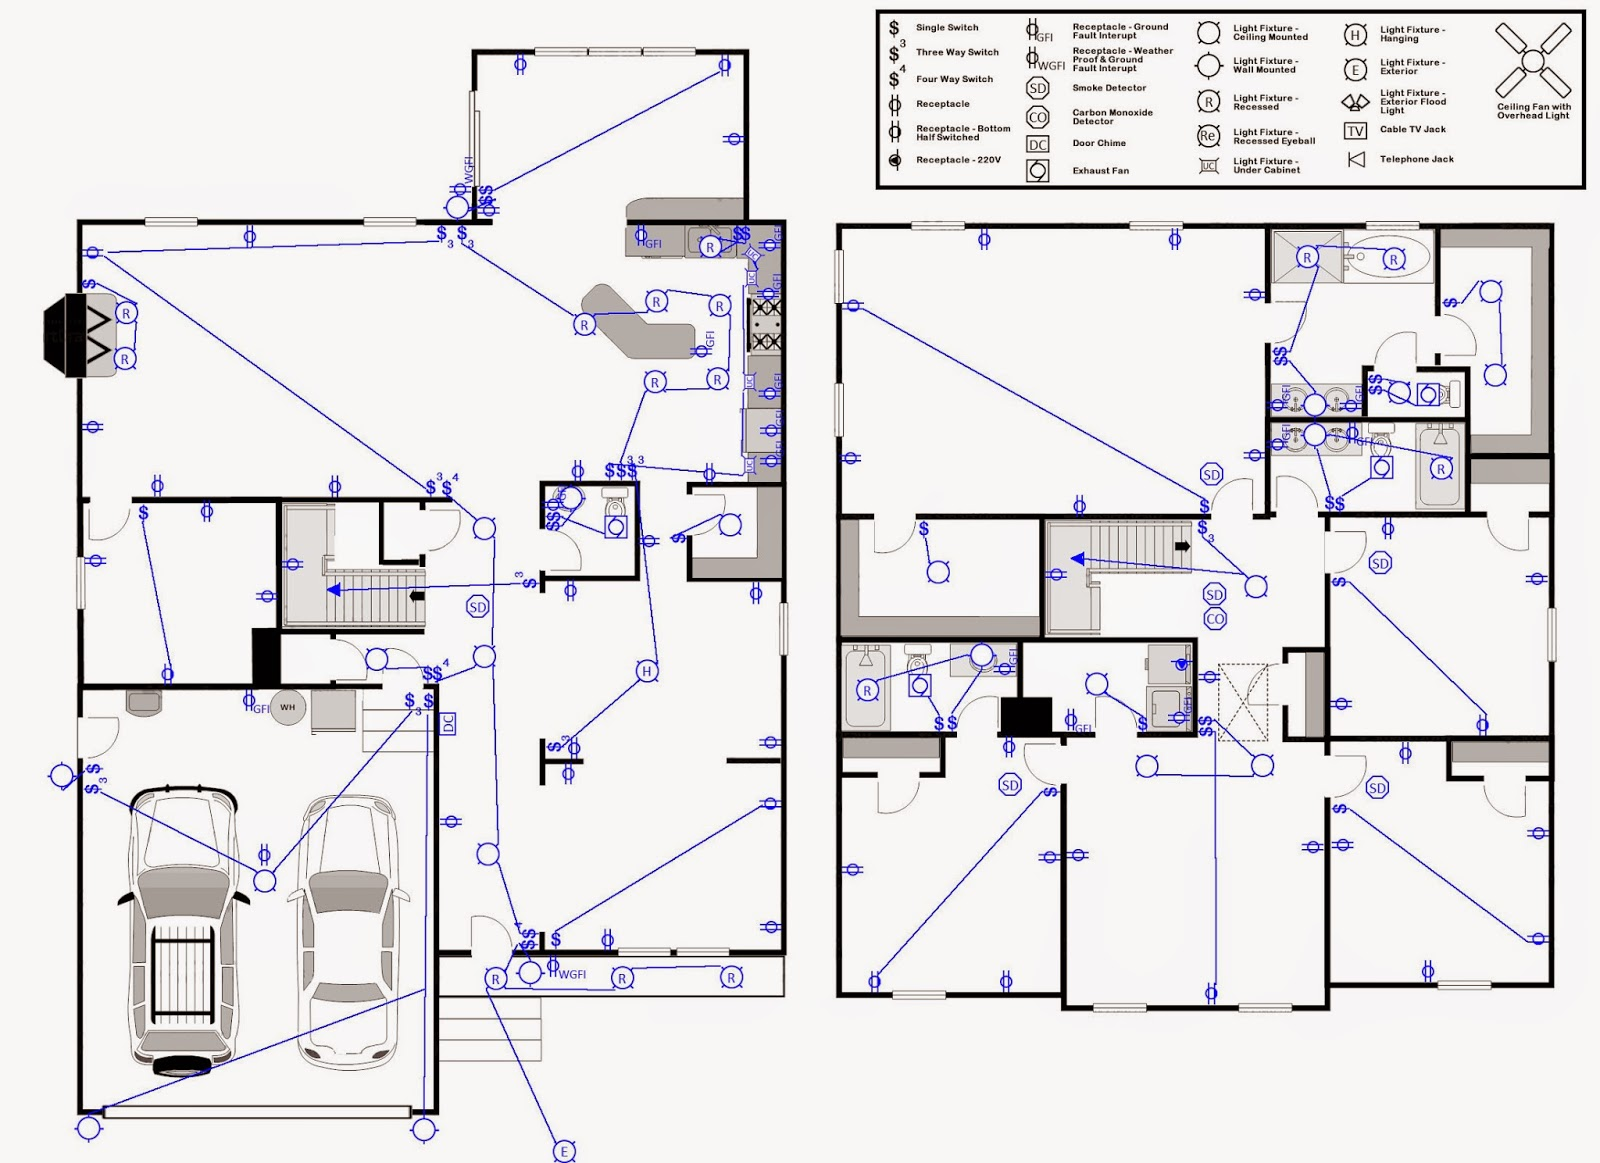 hight resolution of ceiling fan wiring diagram of rough wiring library ceiling fan wiring diagram of rough